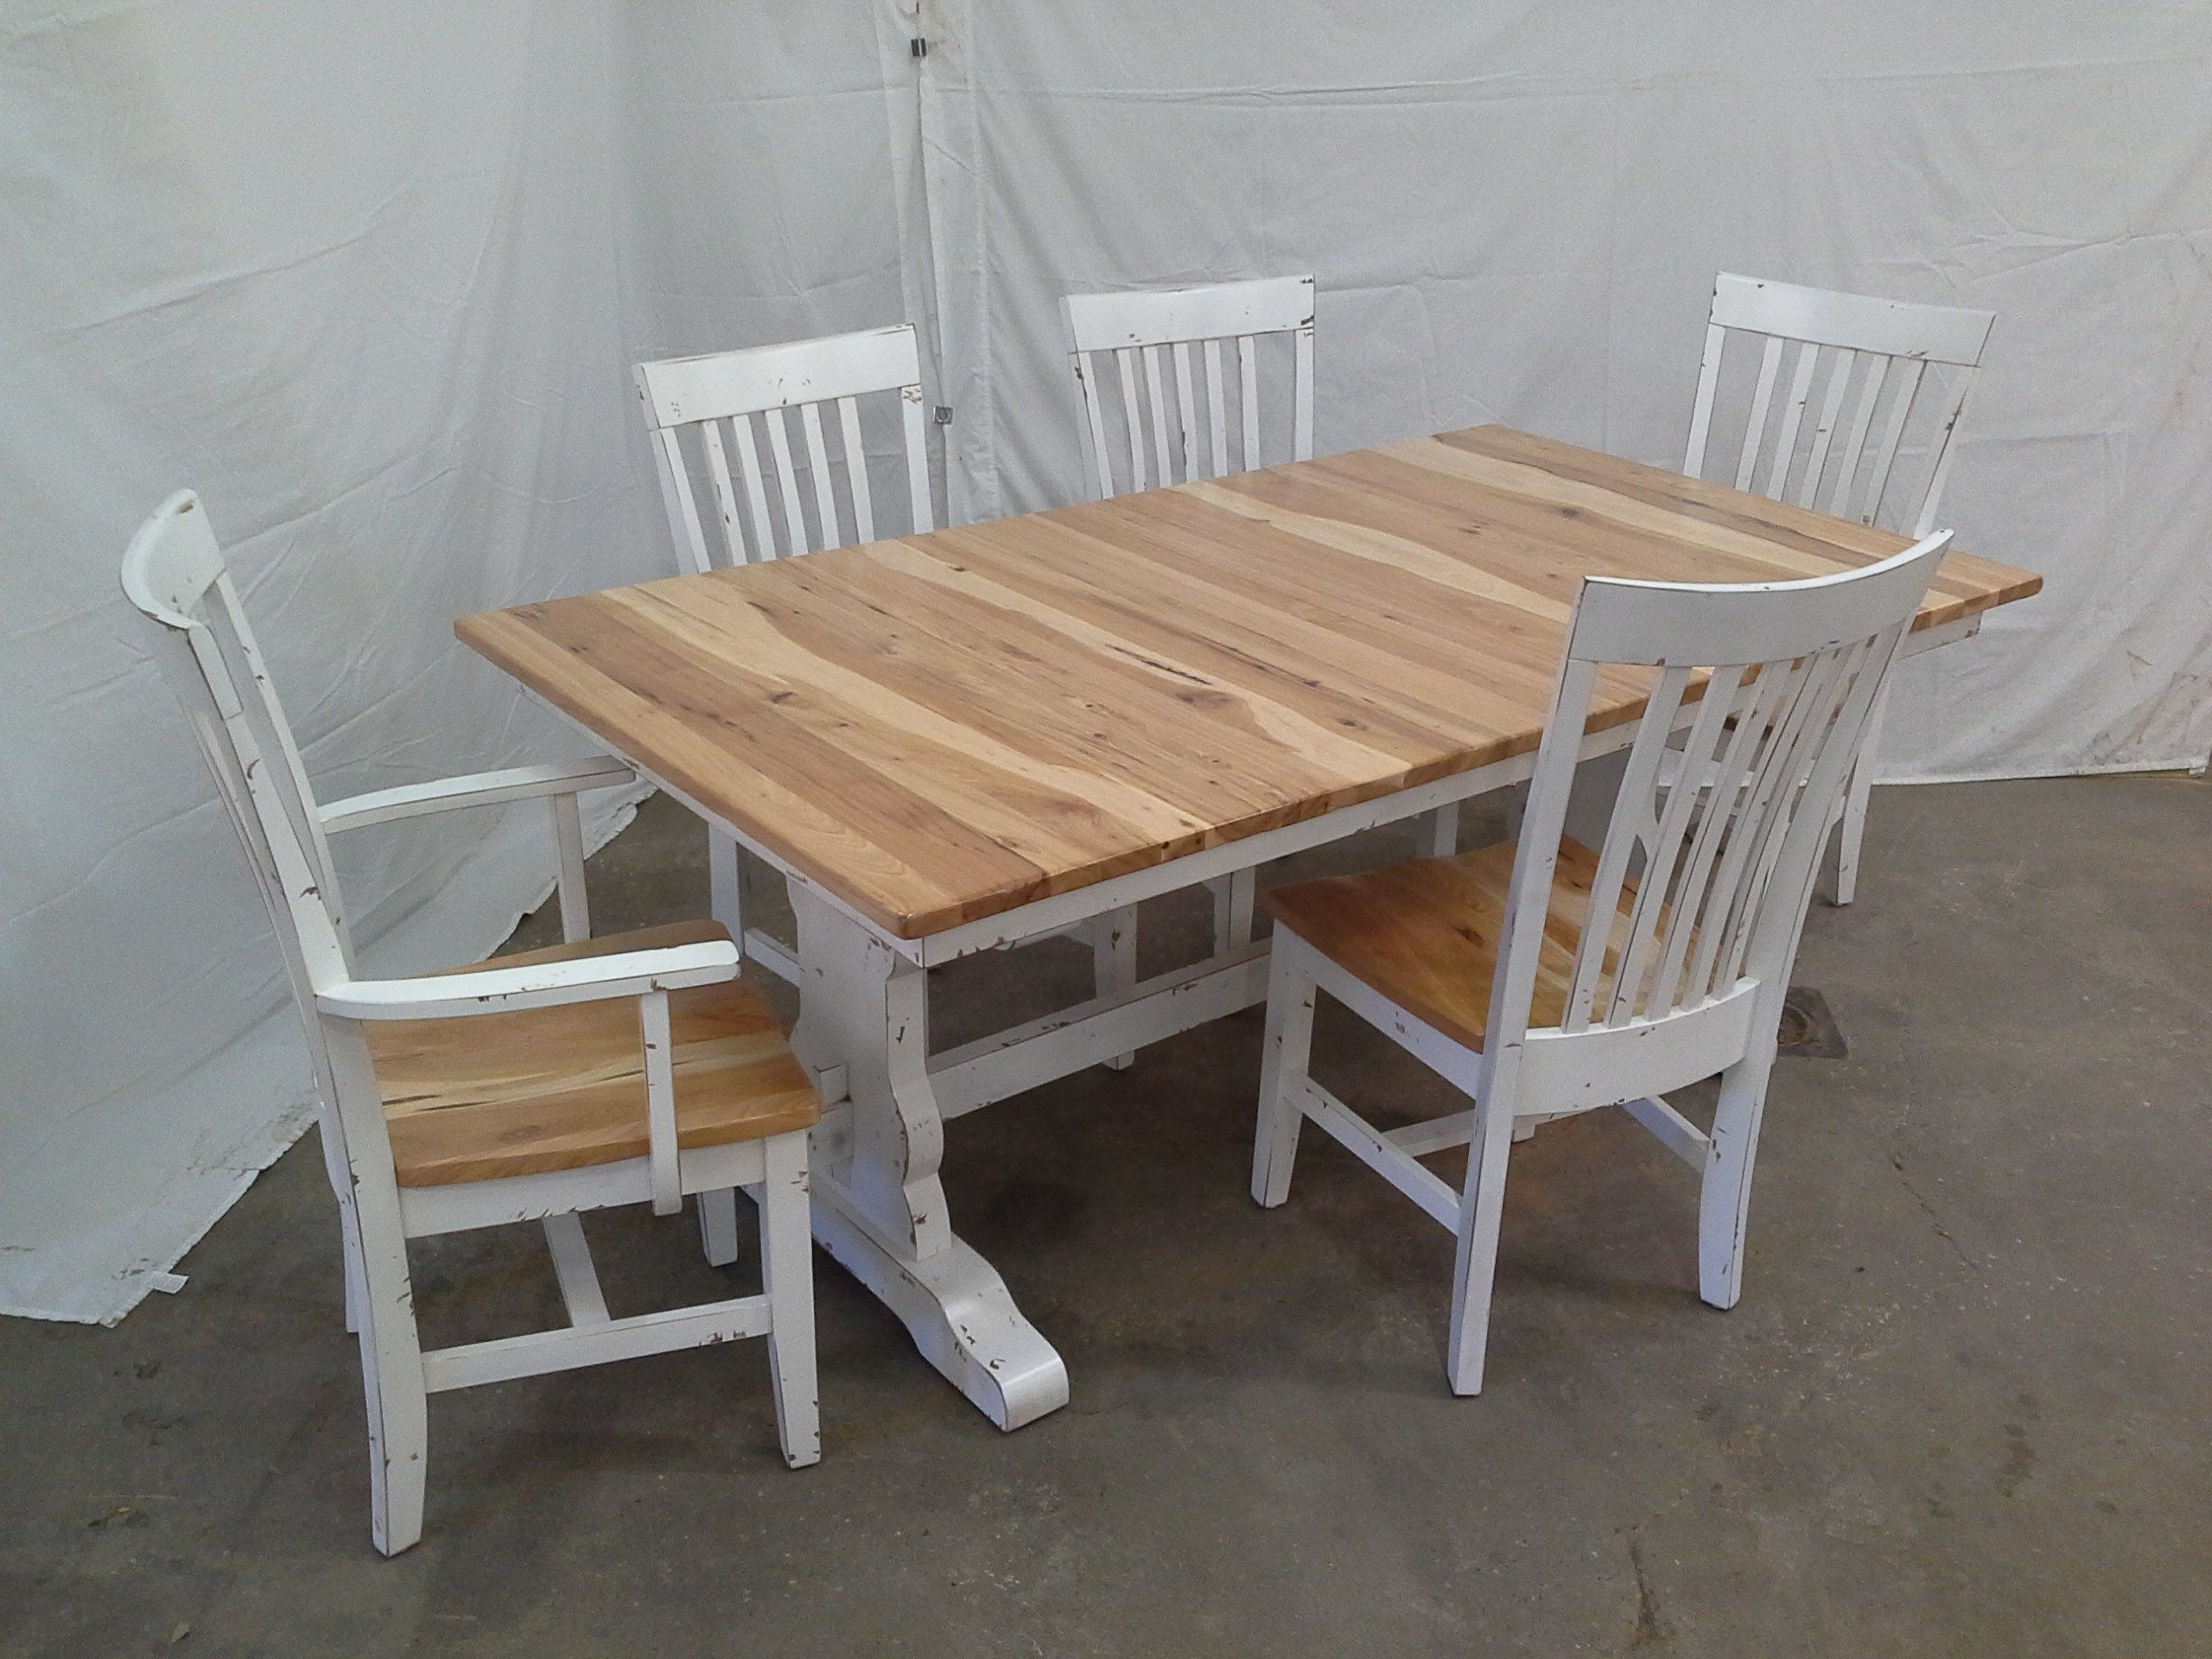 Favorite Rustic Furniture For Home Or Cabin Throughout Reinert 5 Piece Dining Sets (View 9 of 25)